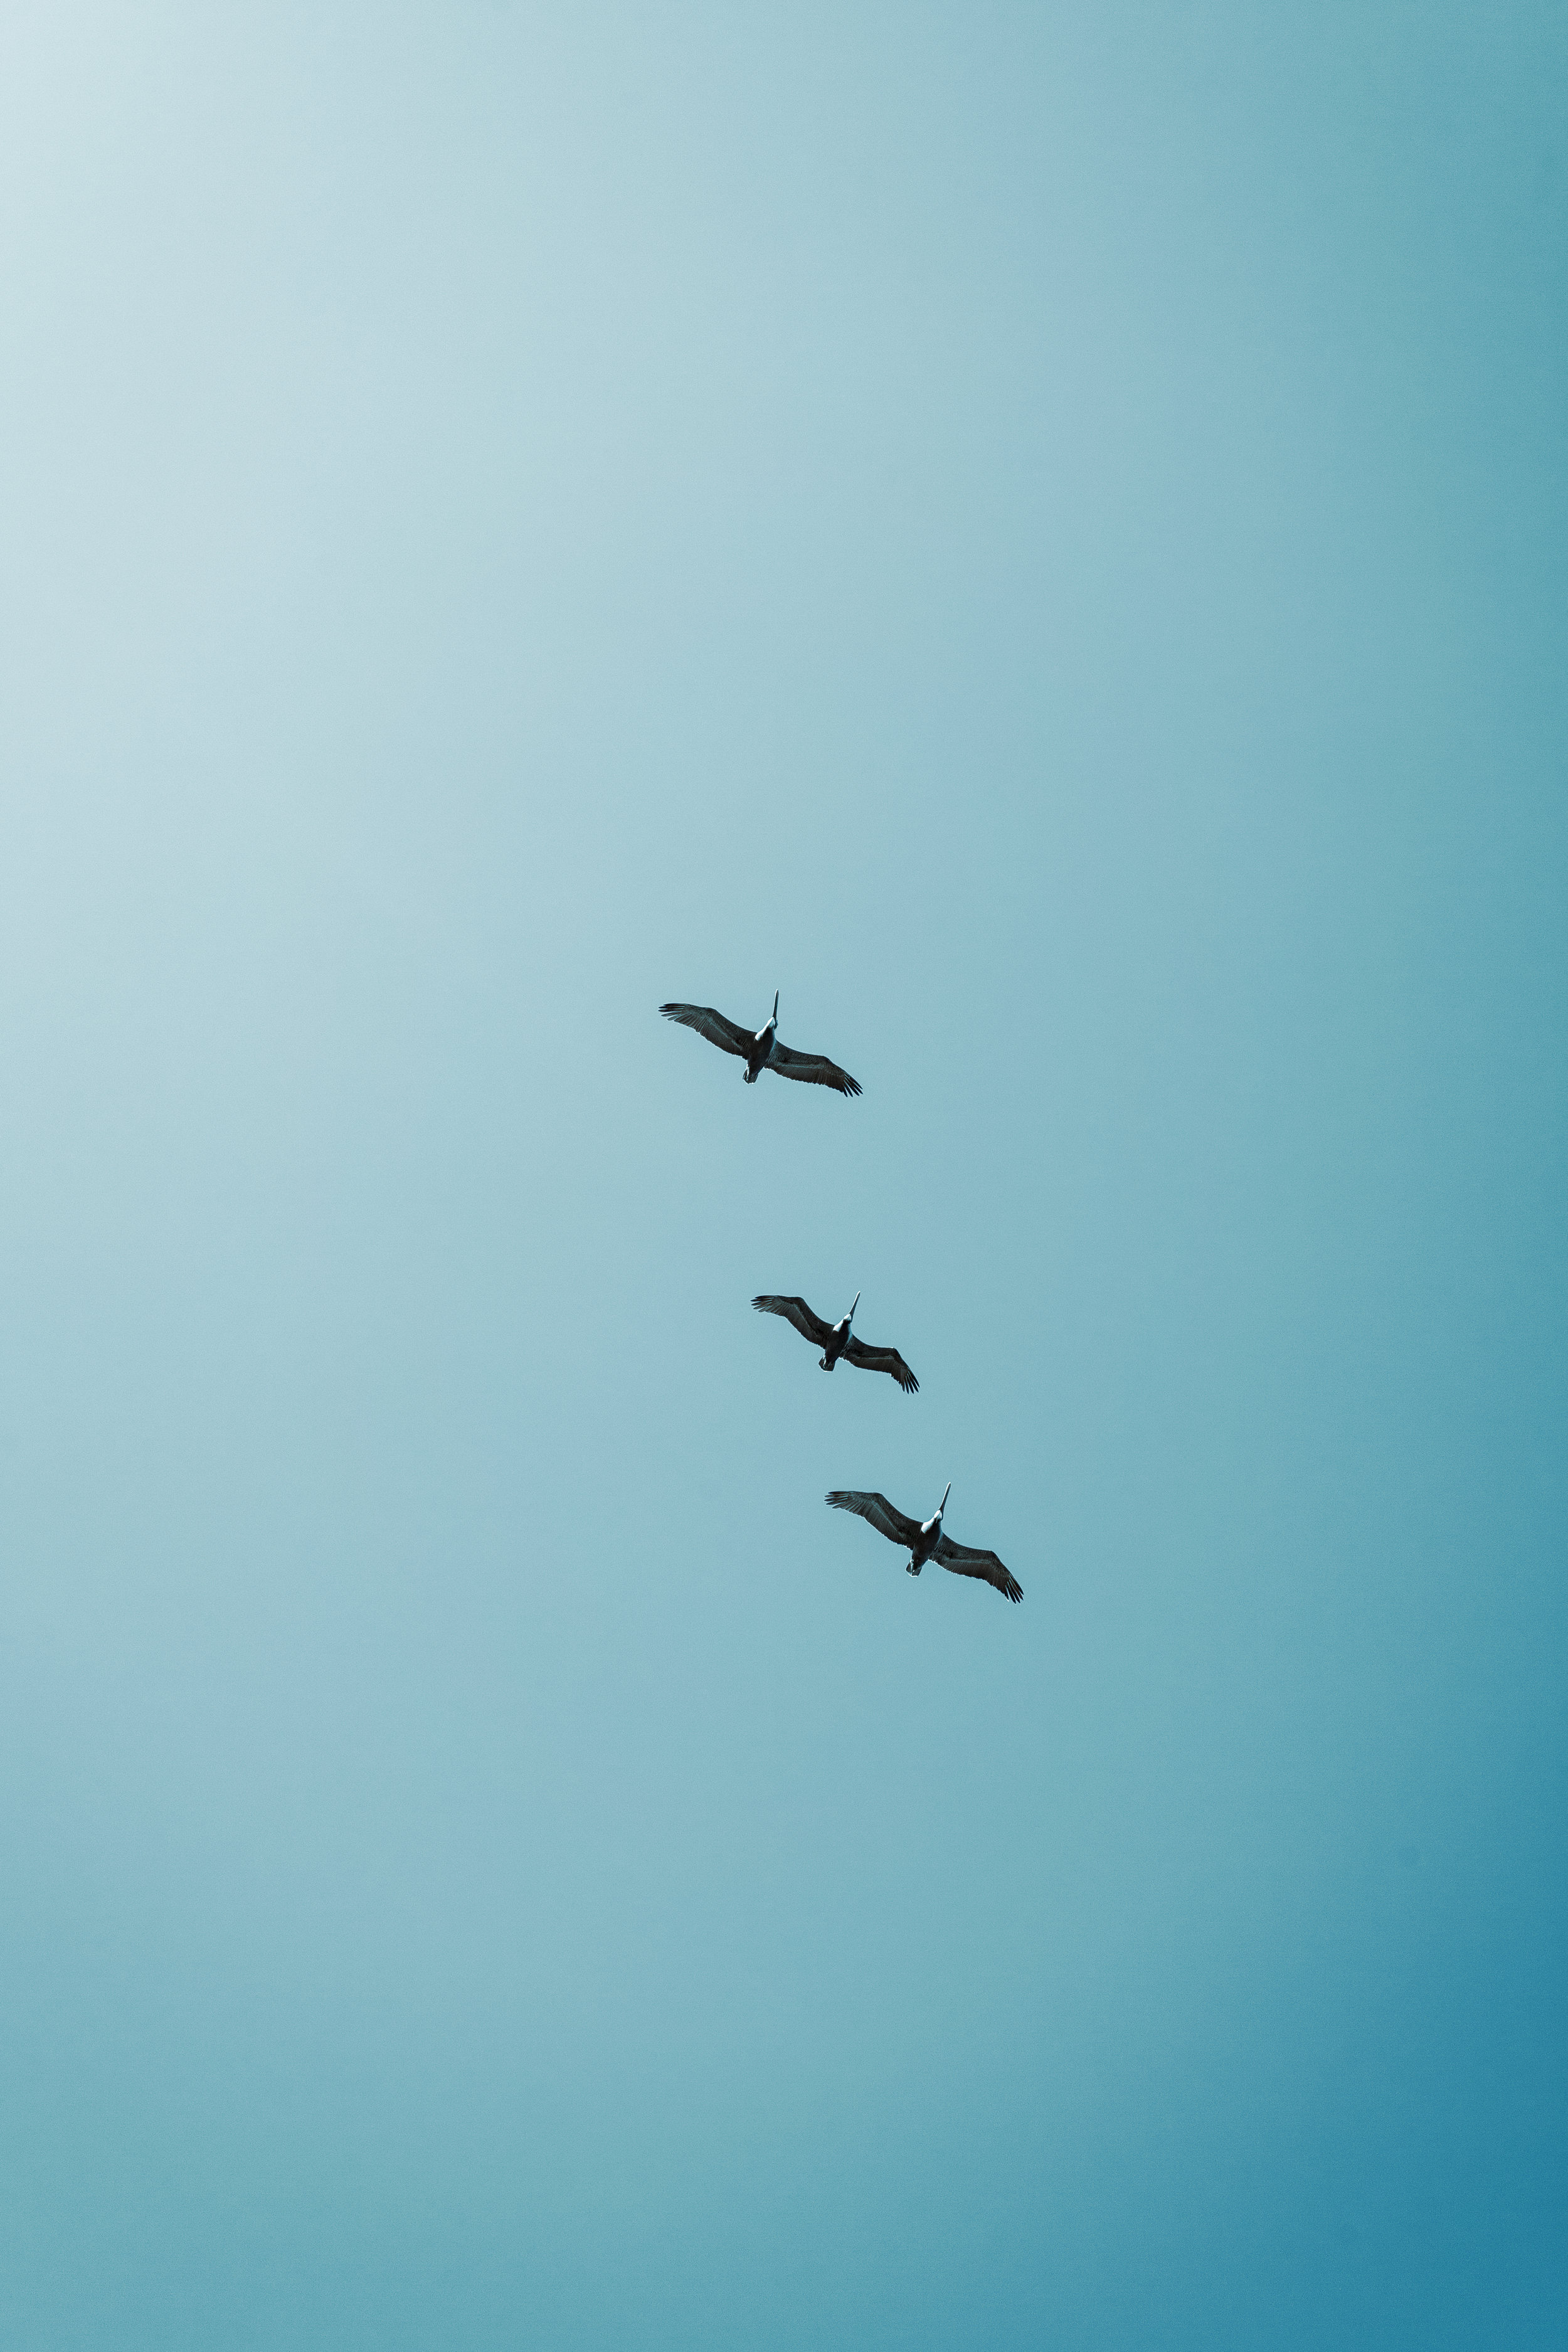 A flock of pelicans is flying by